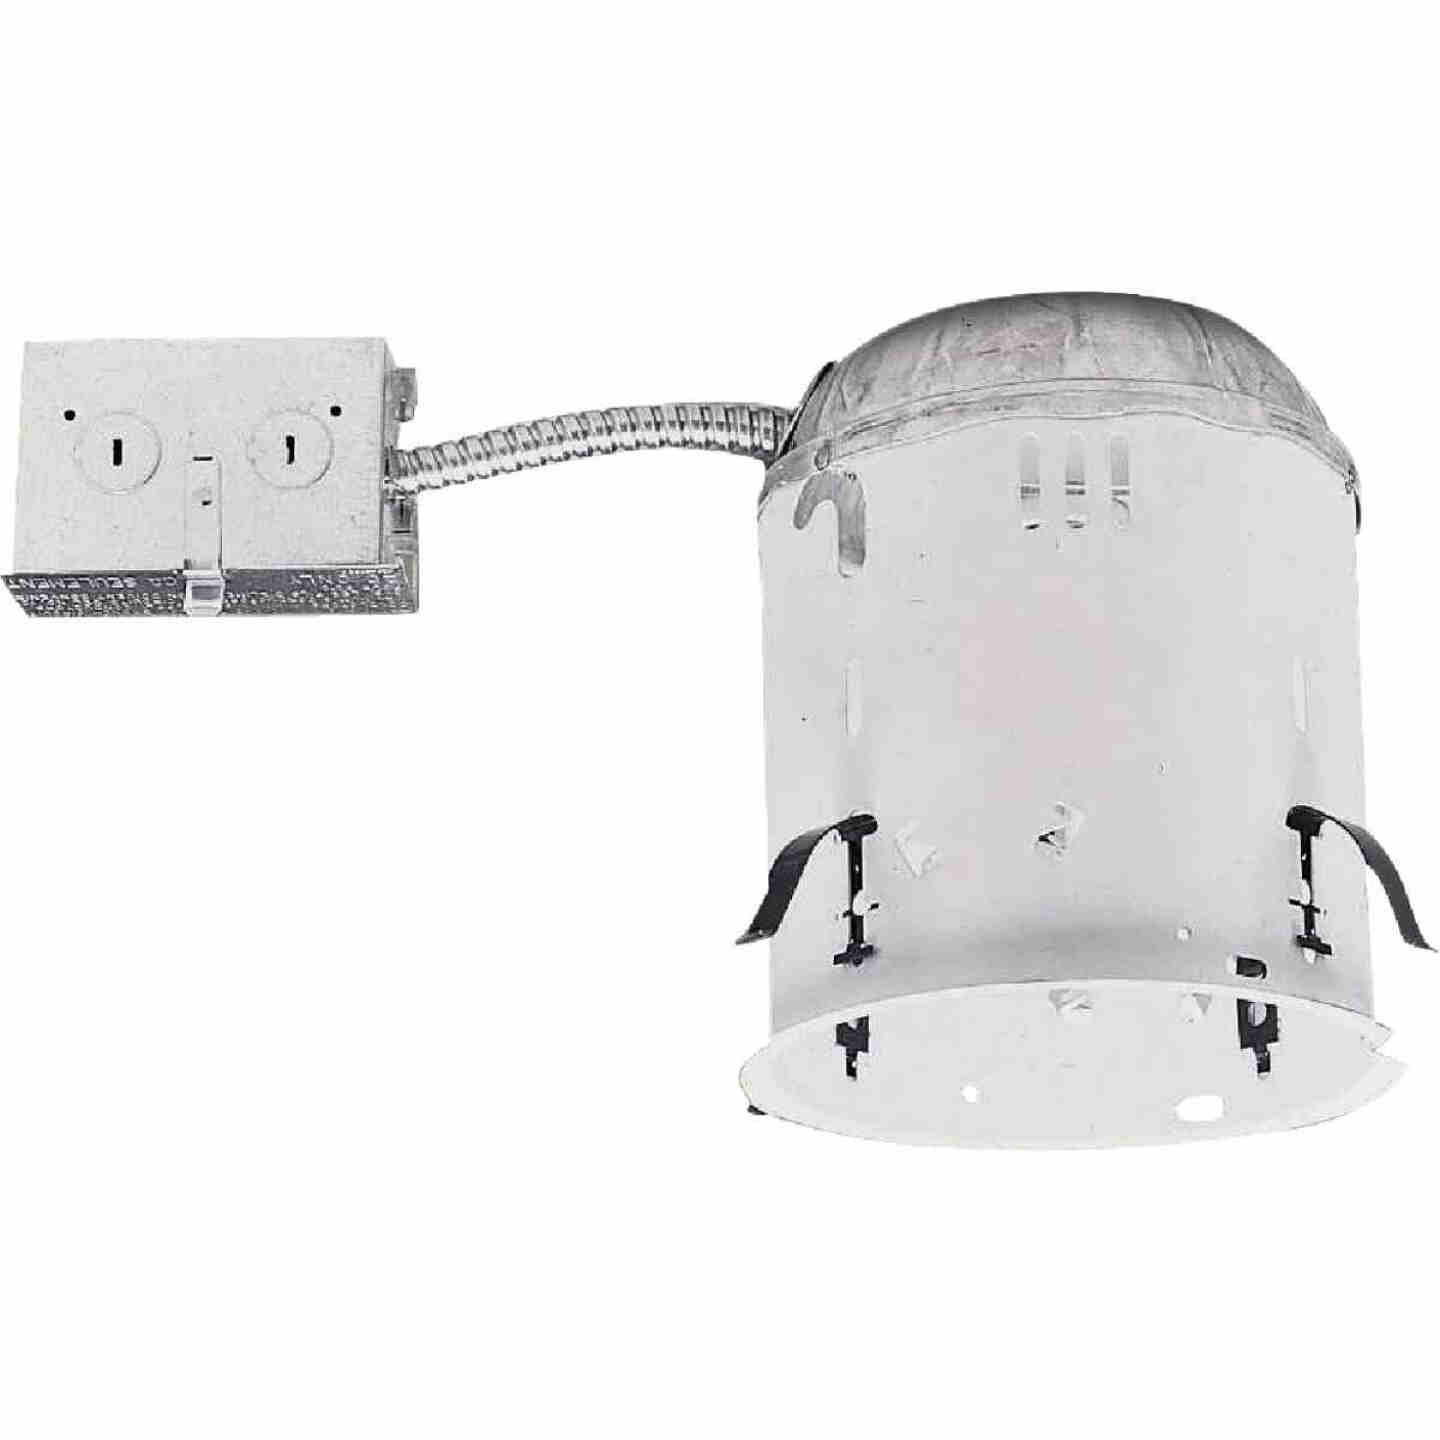 Halo 6 In. Remodel Non-IC Rated Recessed Light Fixture Image 1